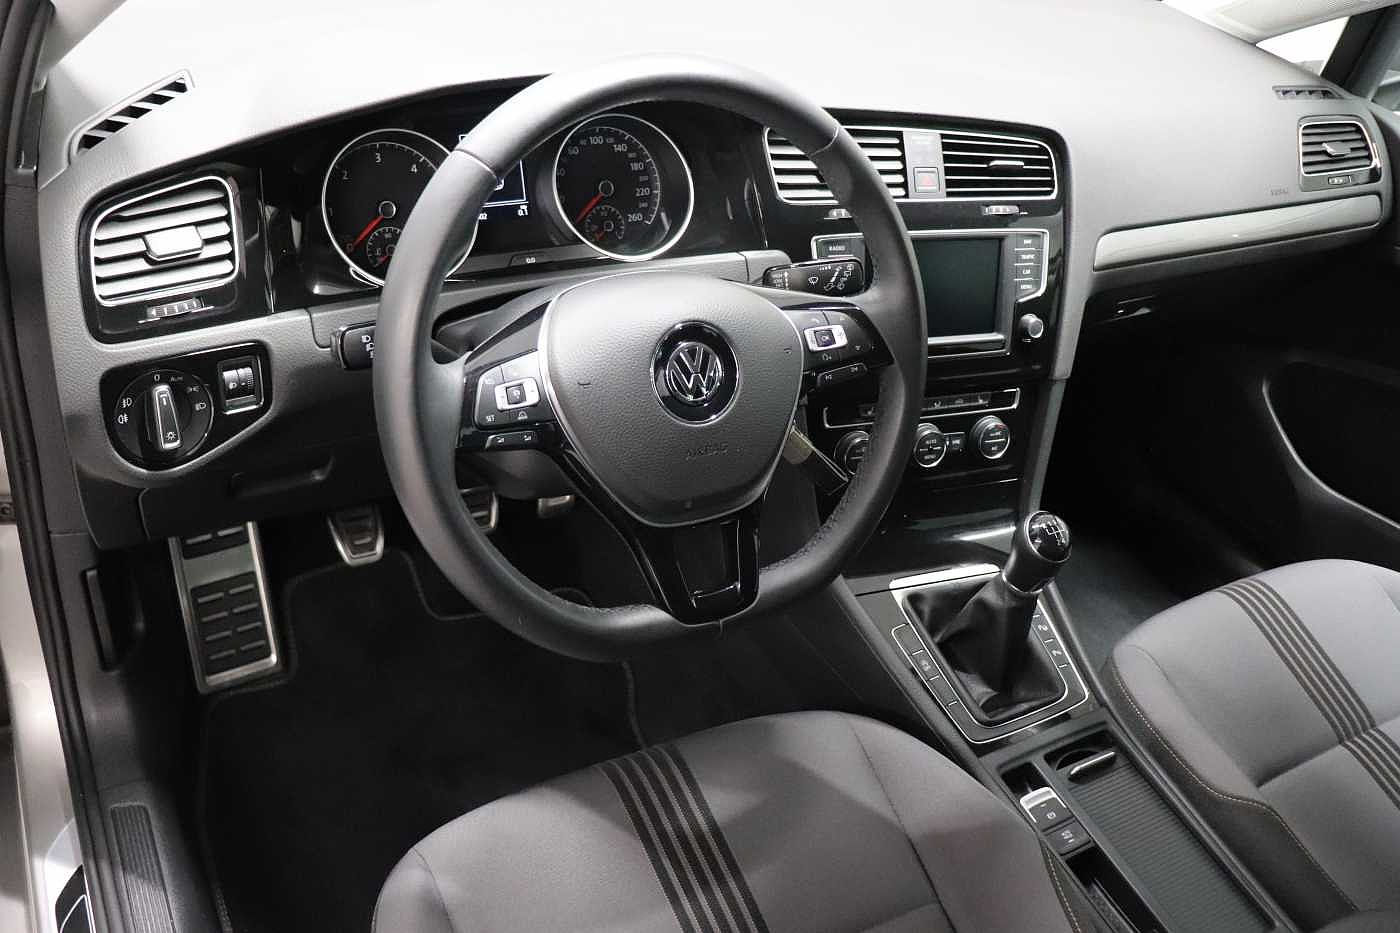 Volkswagen Golf 1.6TDI - photo 13